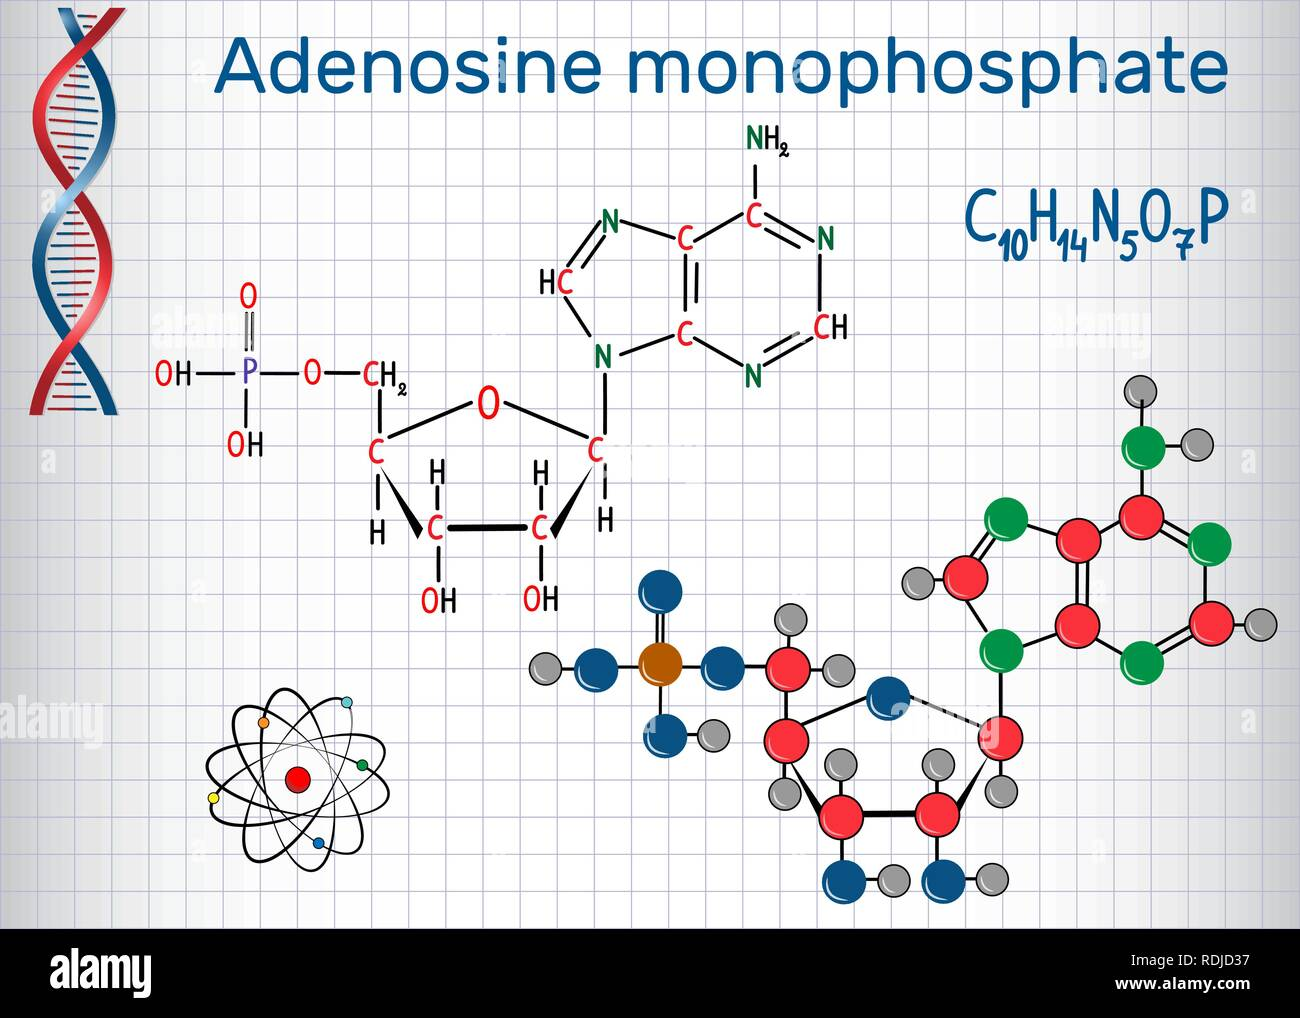 Adenosine monophosphate (AMP) molecule, it is an ester of phosphoric acid and the nucleoside adenosine monomer in the production RNA . Sheet of paper  - Stock Image